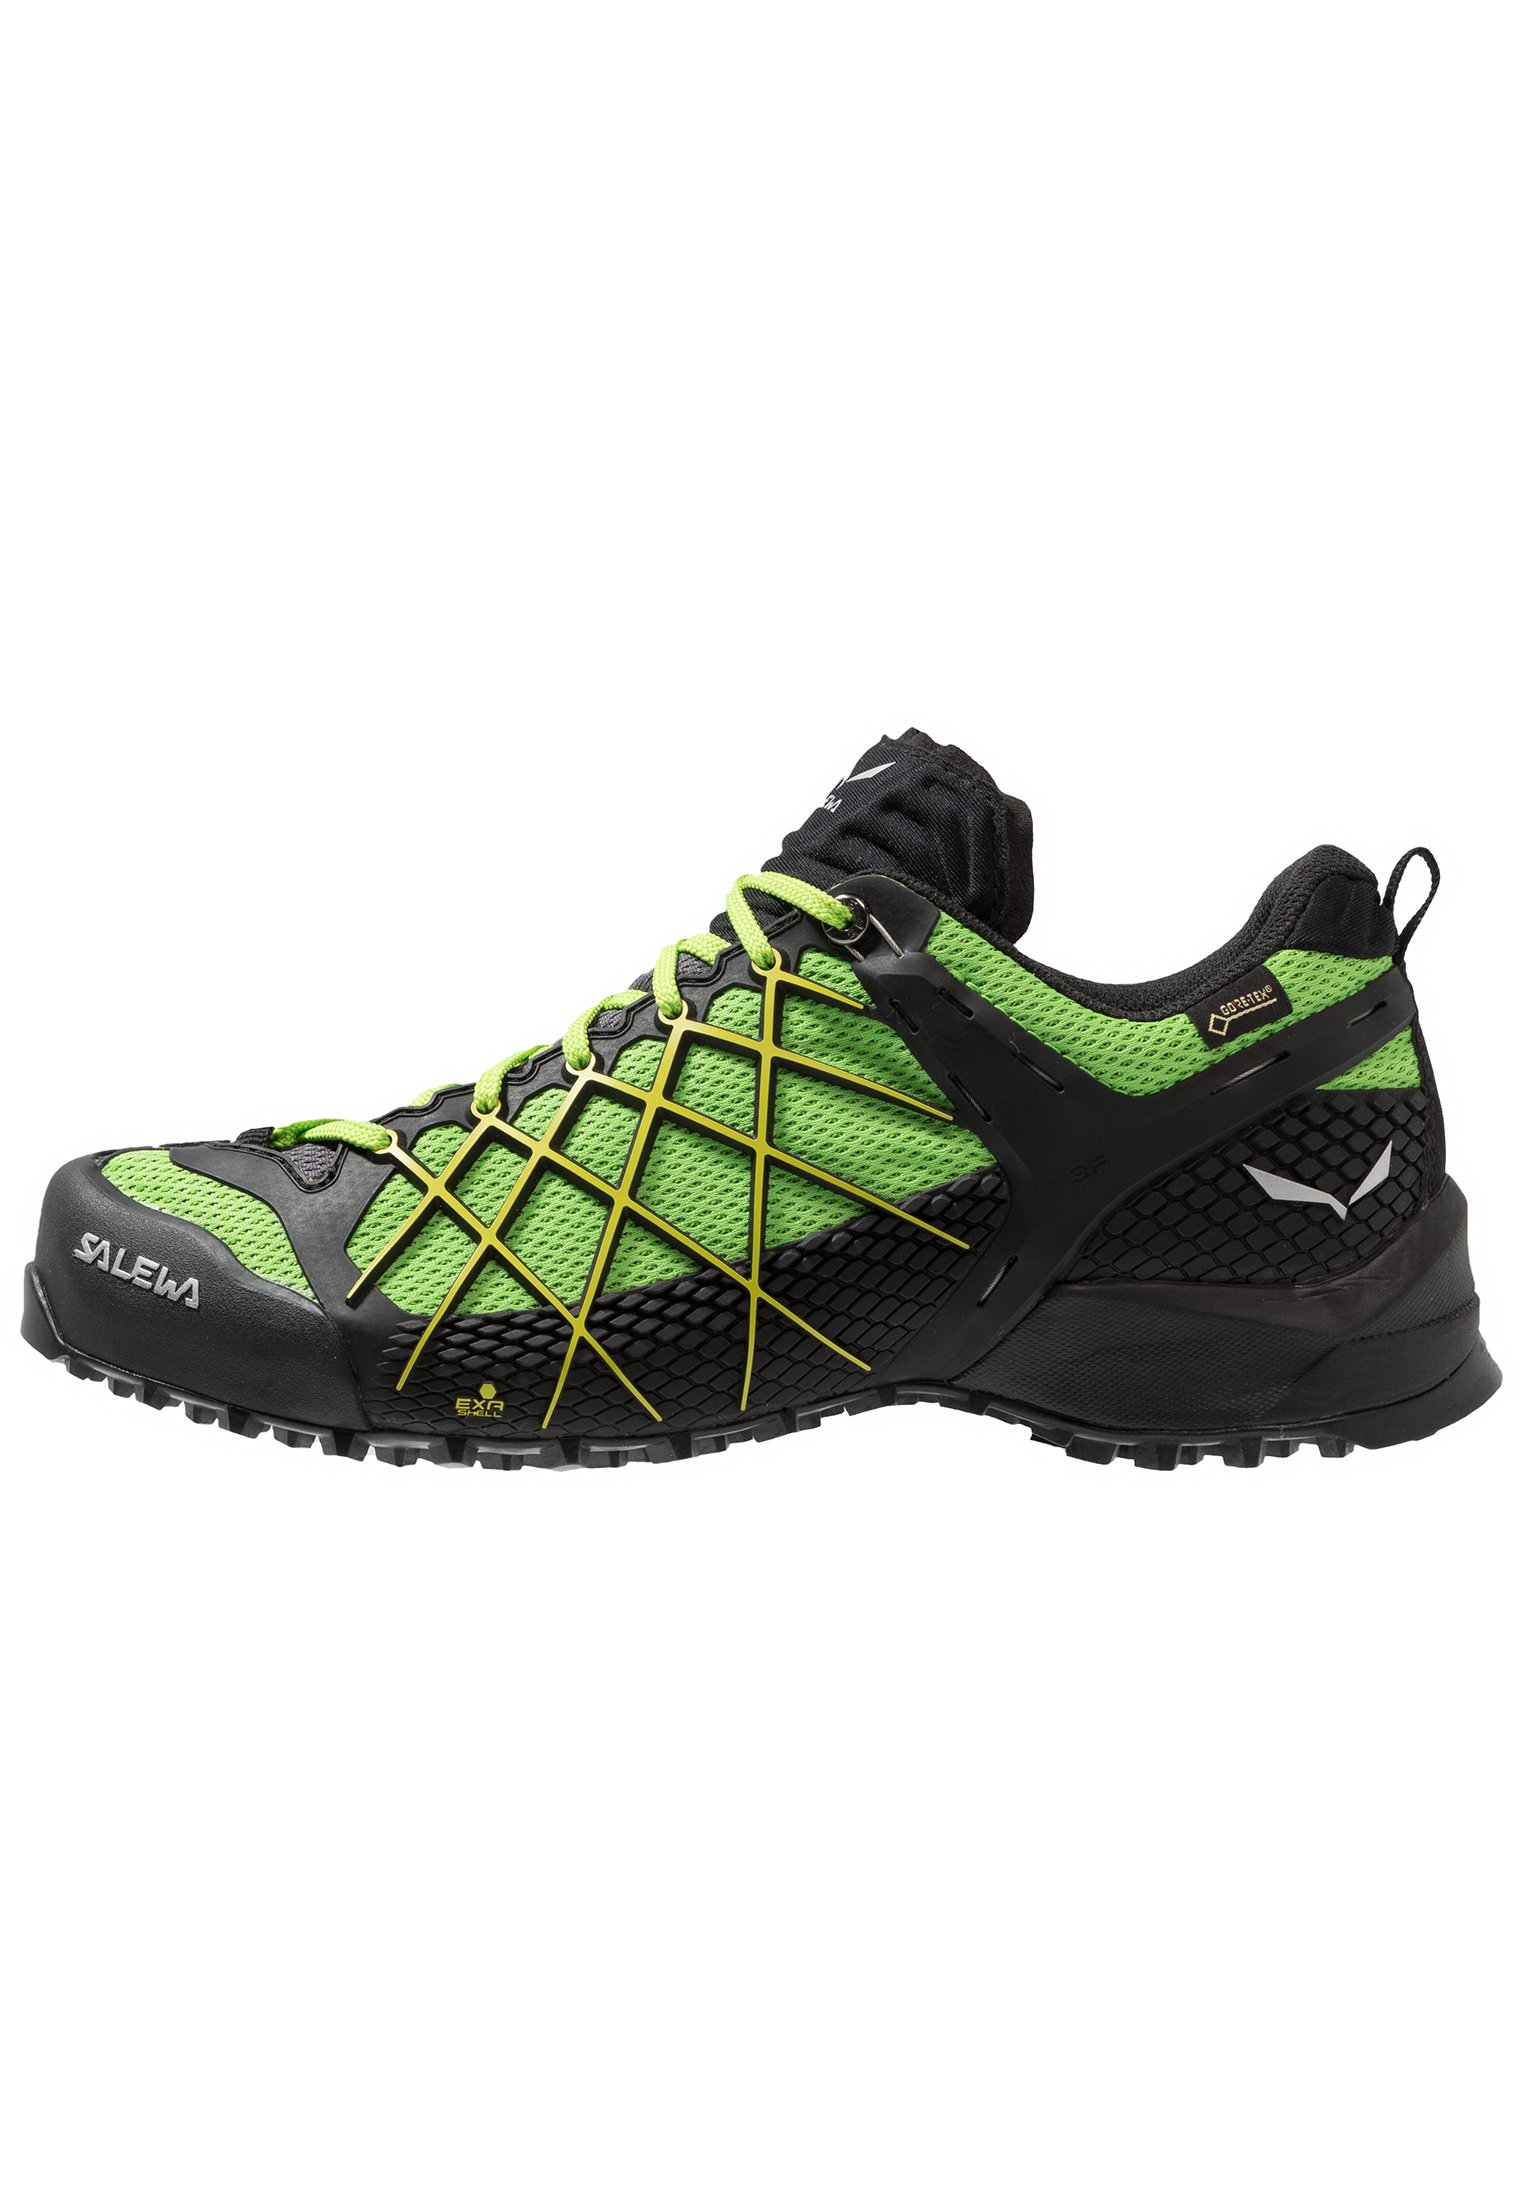 MS WILDFIRE S GTX Hikingskor black outfluo yellow